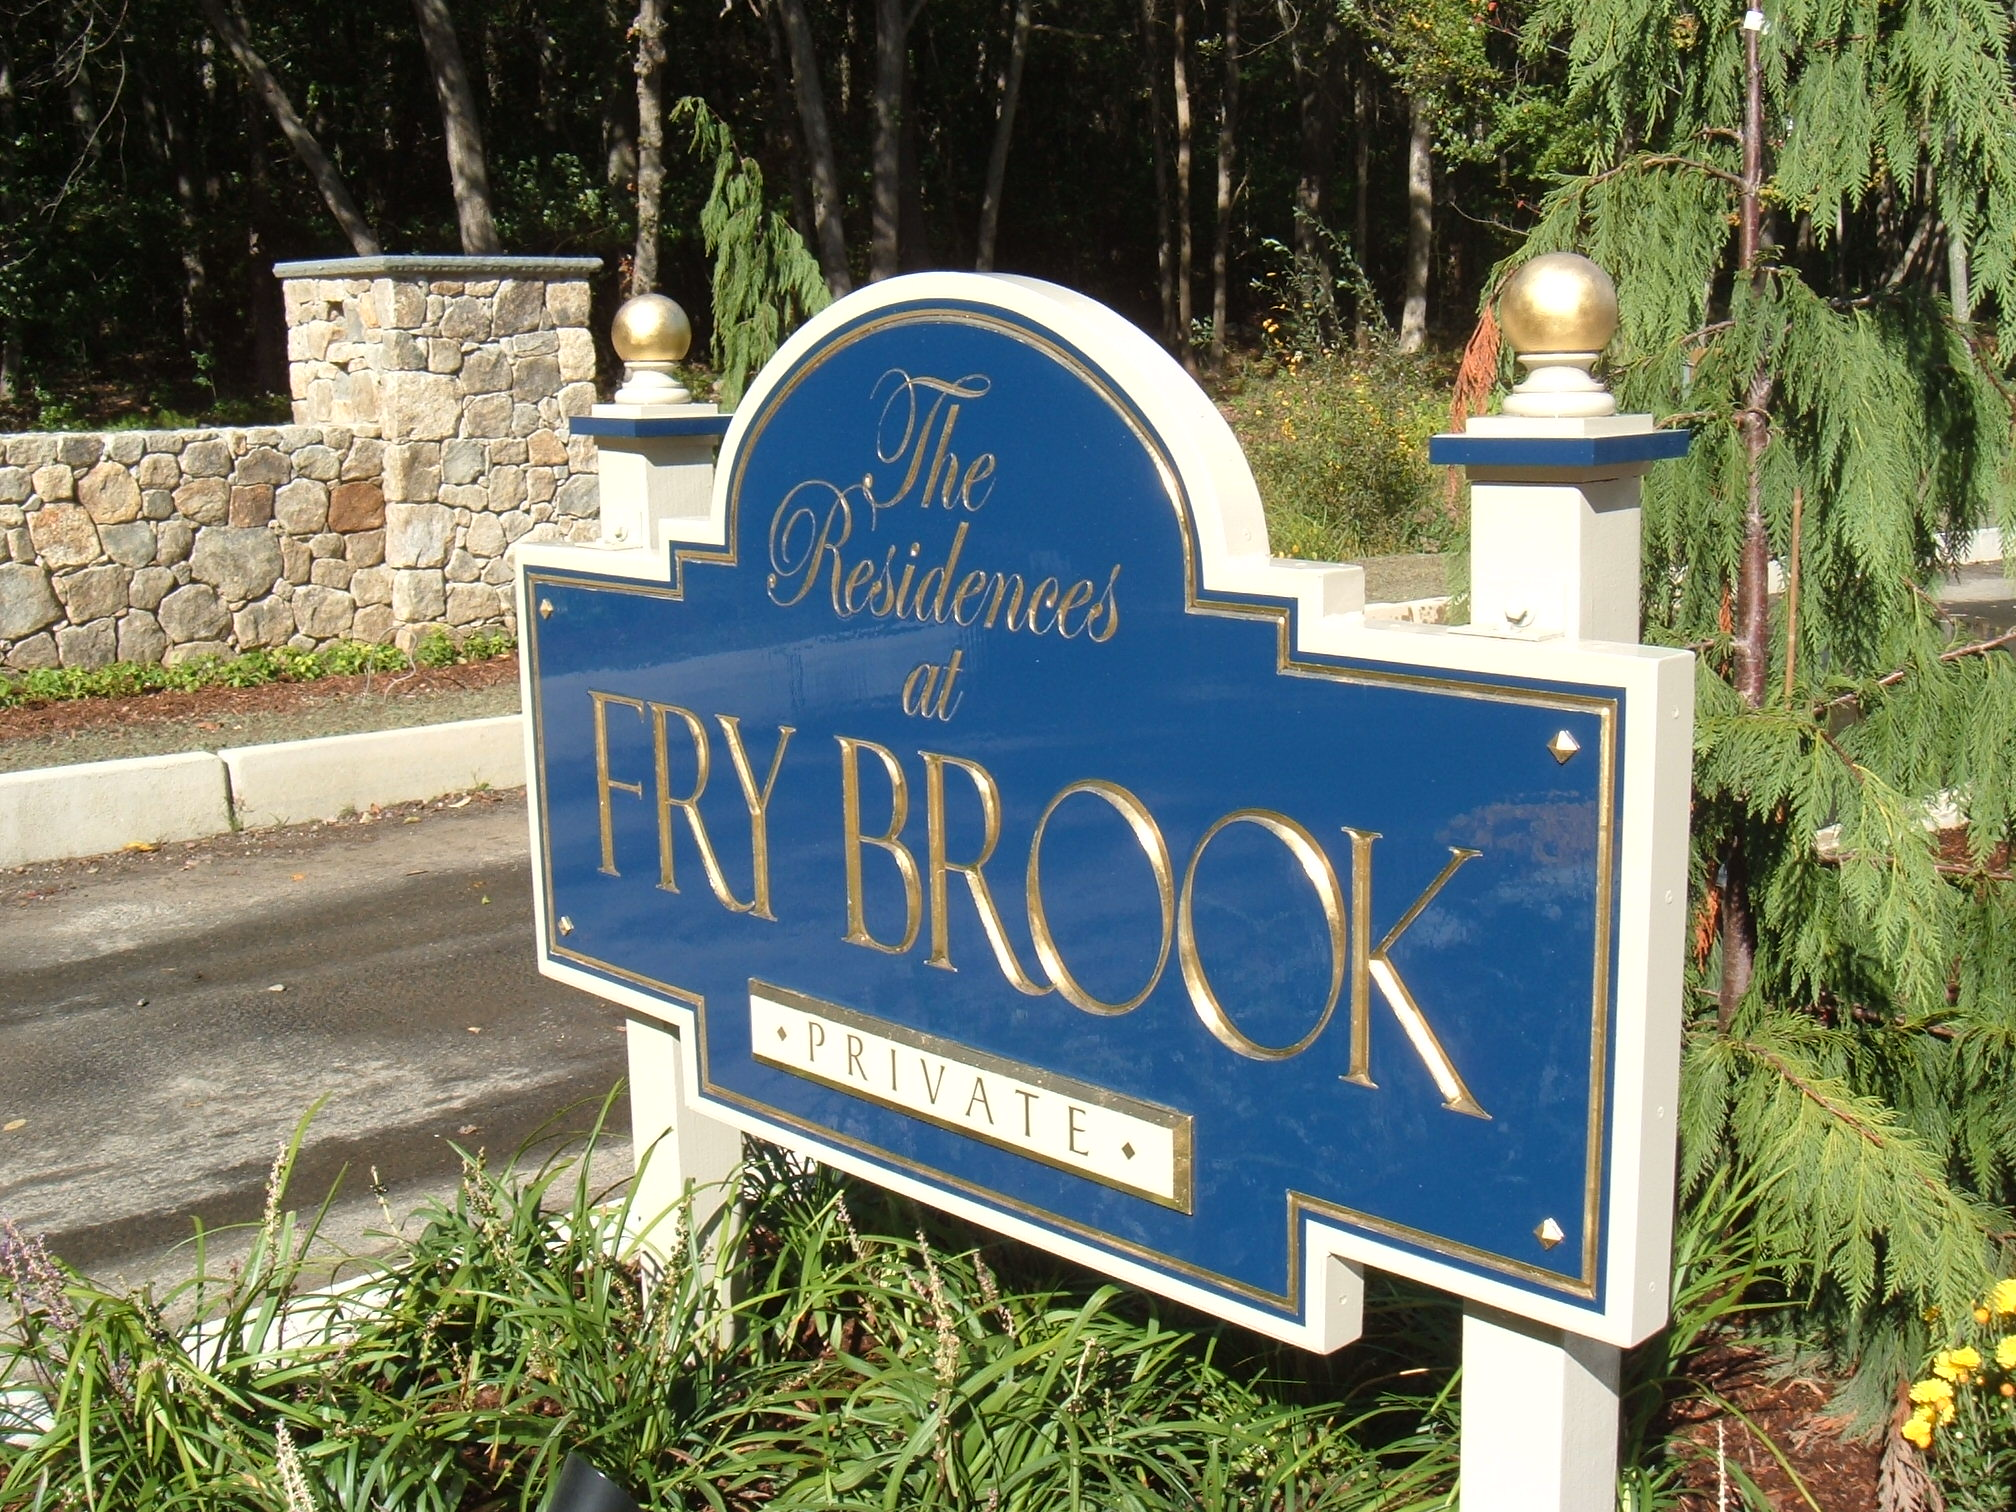 Fry brook carved sign